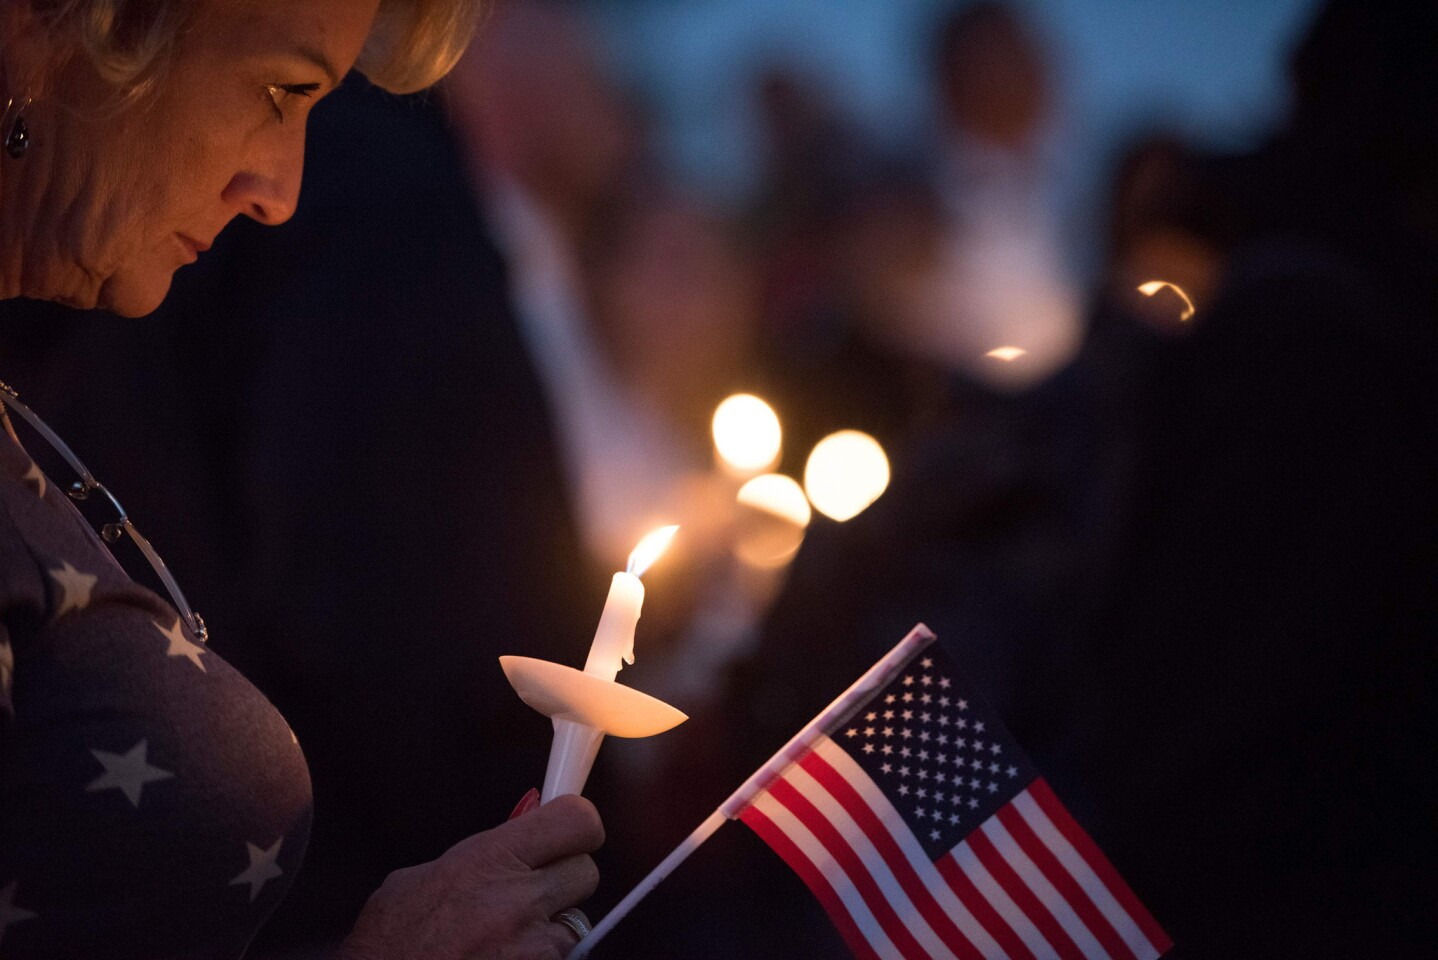 People attend a memorial for Las Vegas Police Officer Charleston Hartfield at Police Memorial Park. Hartfield, who was off duty at the music festival, was killed when Stephen Paddock opened fire.